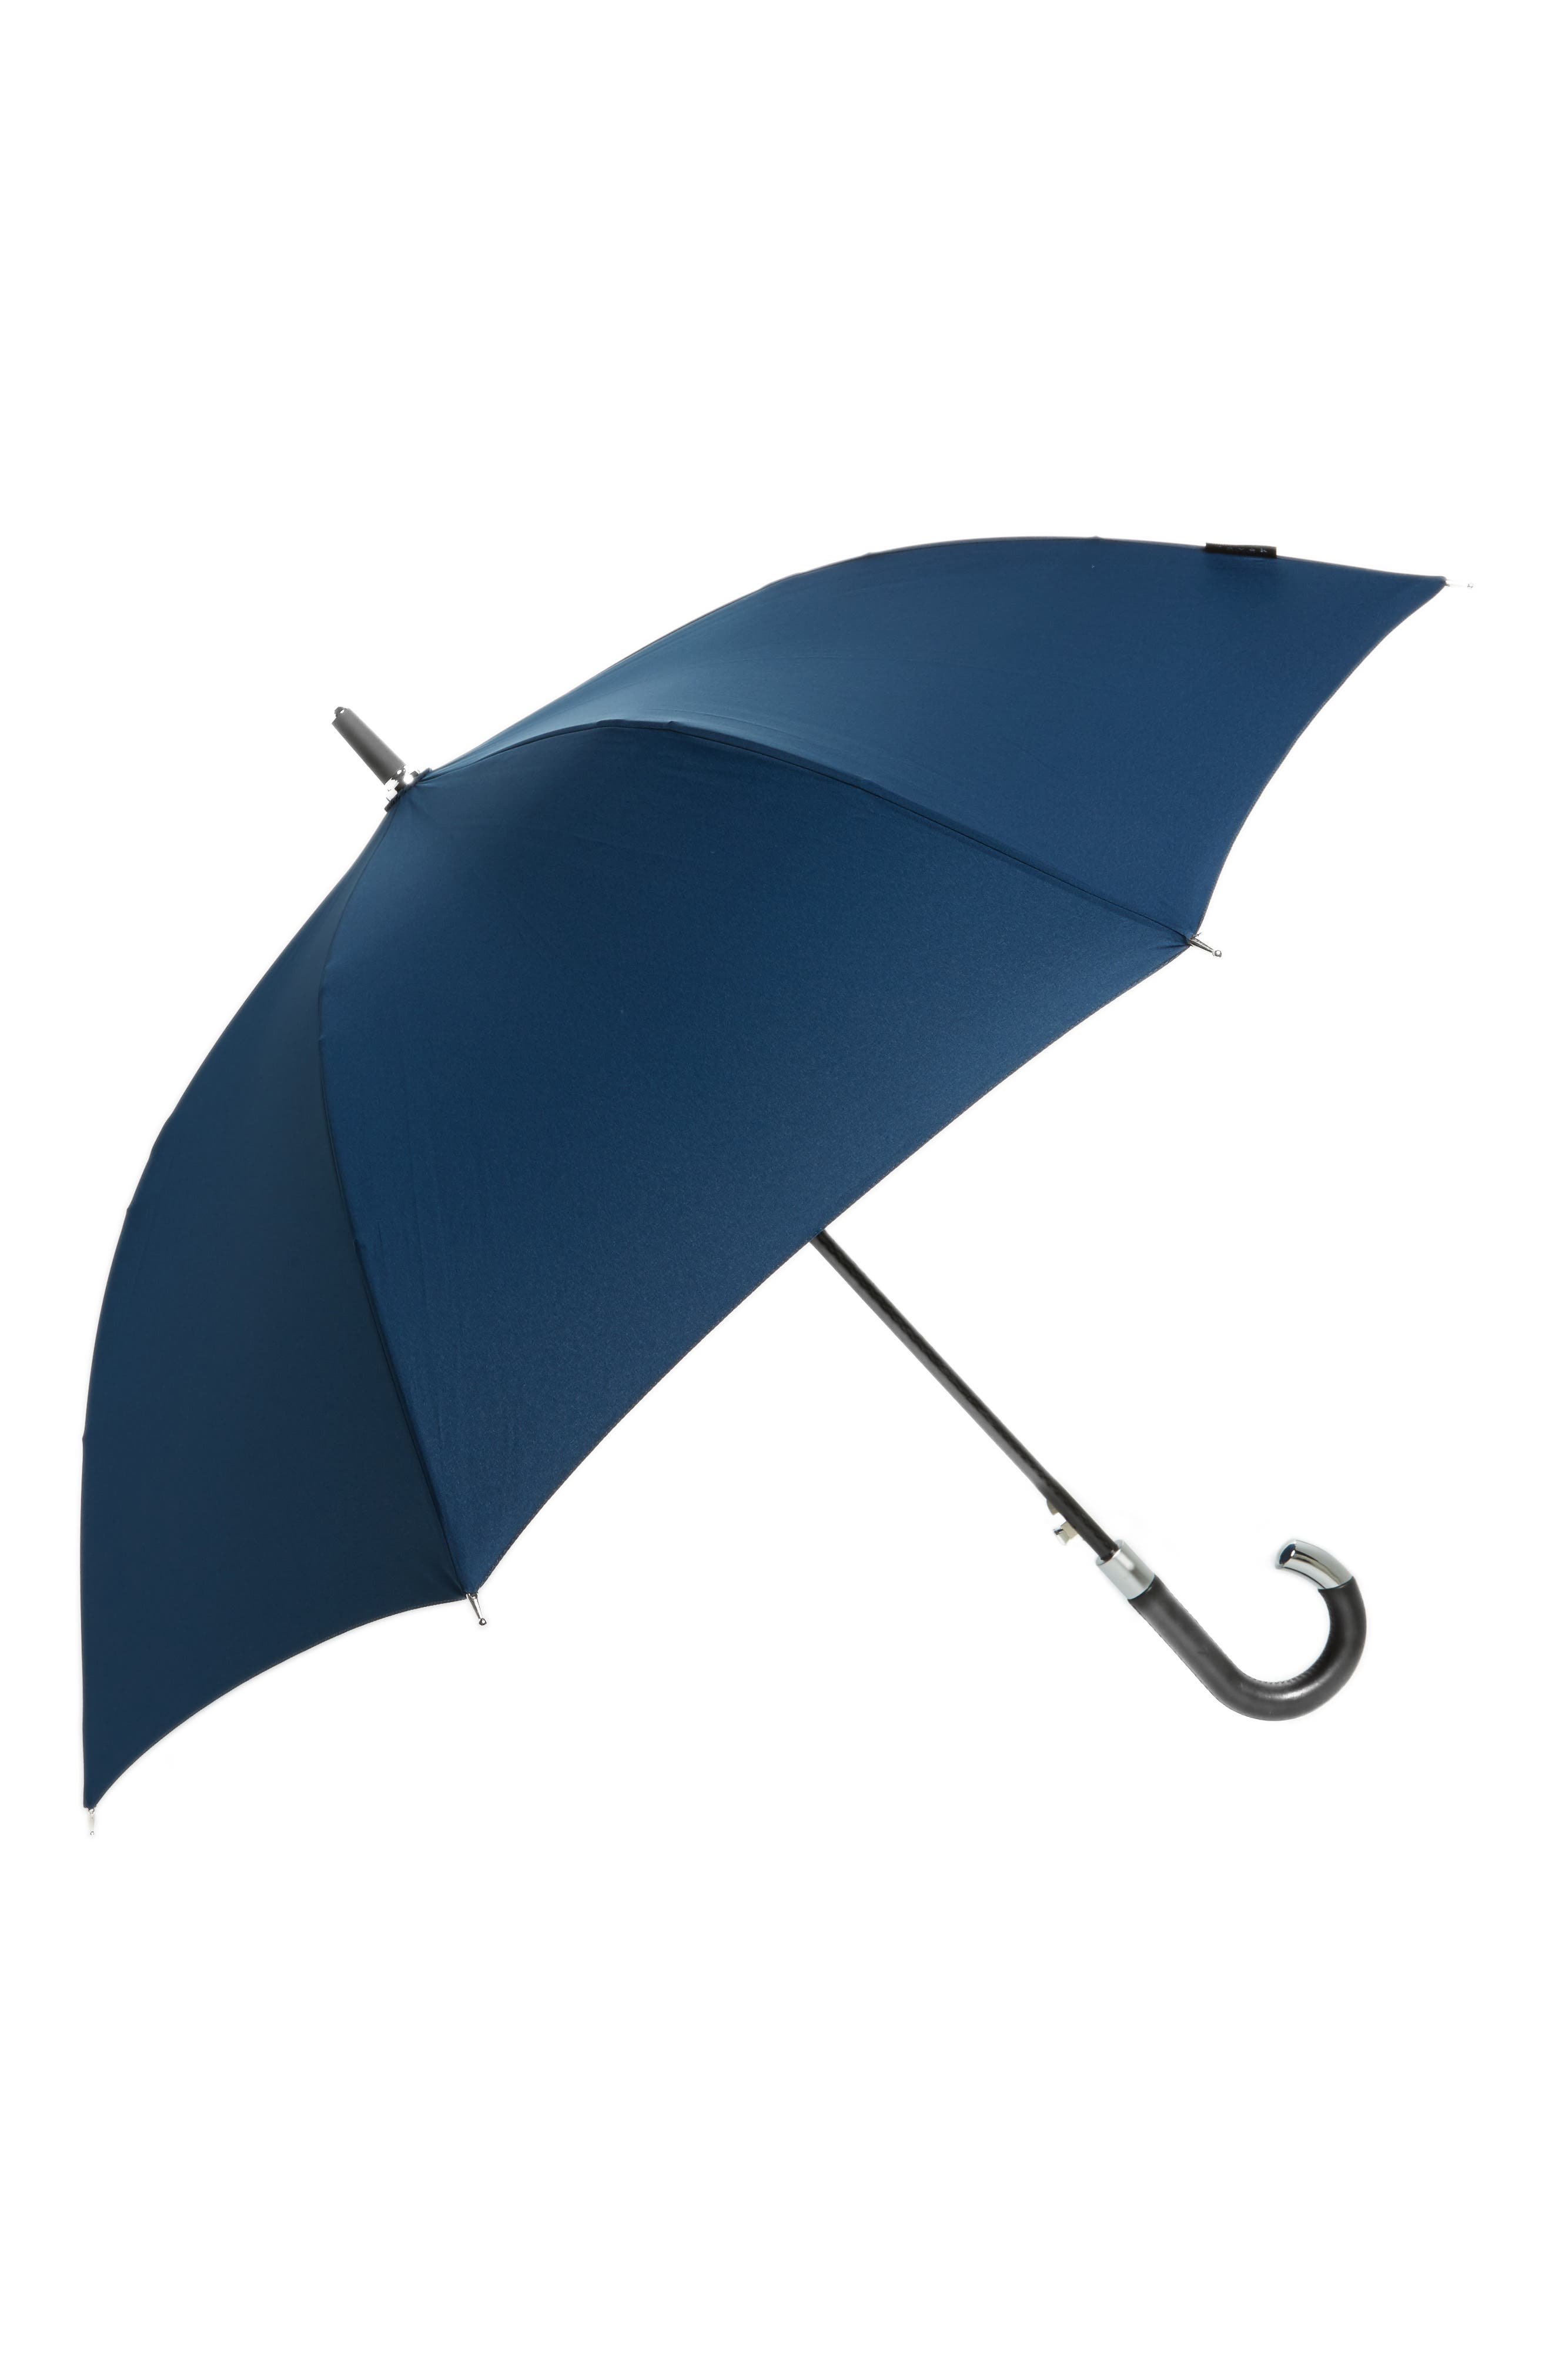 DAVEK Elite Cane Umbrella